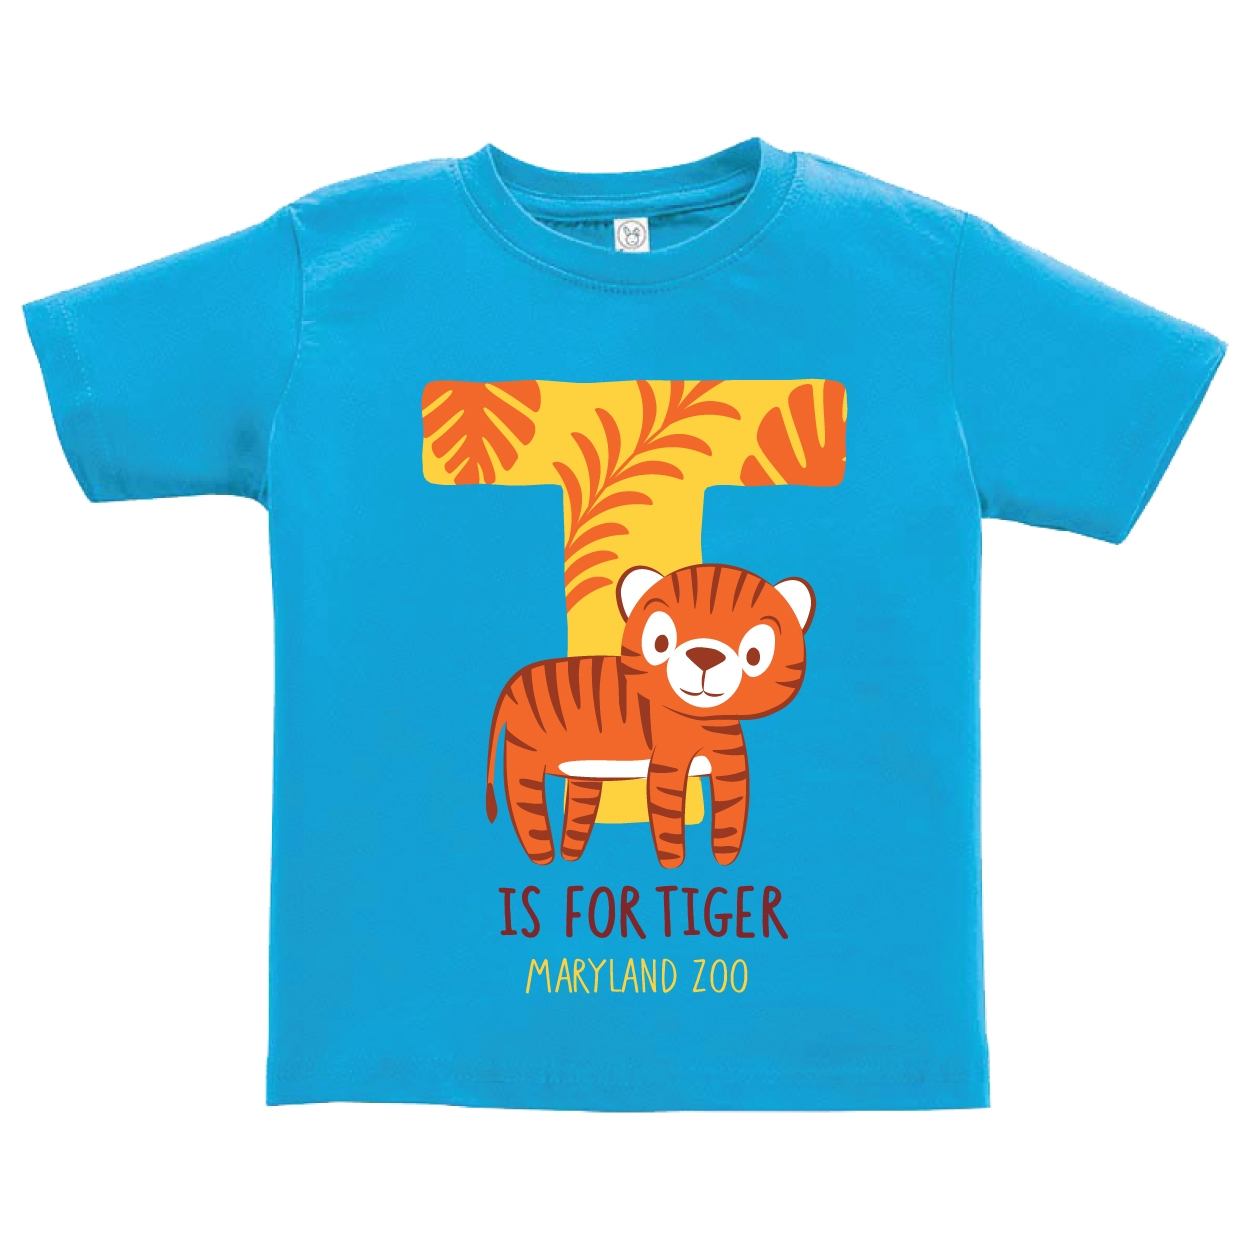 TODDLER T IS FOR TIGER